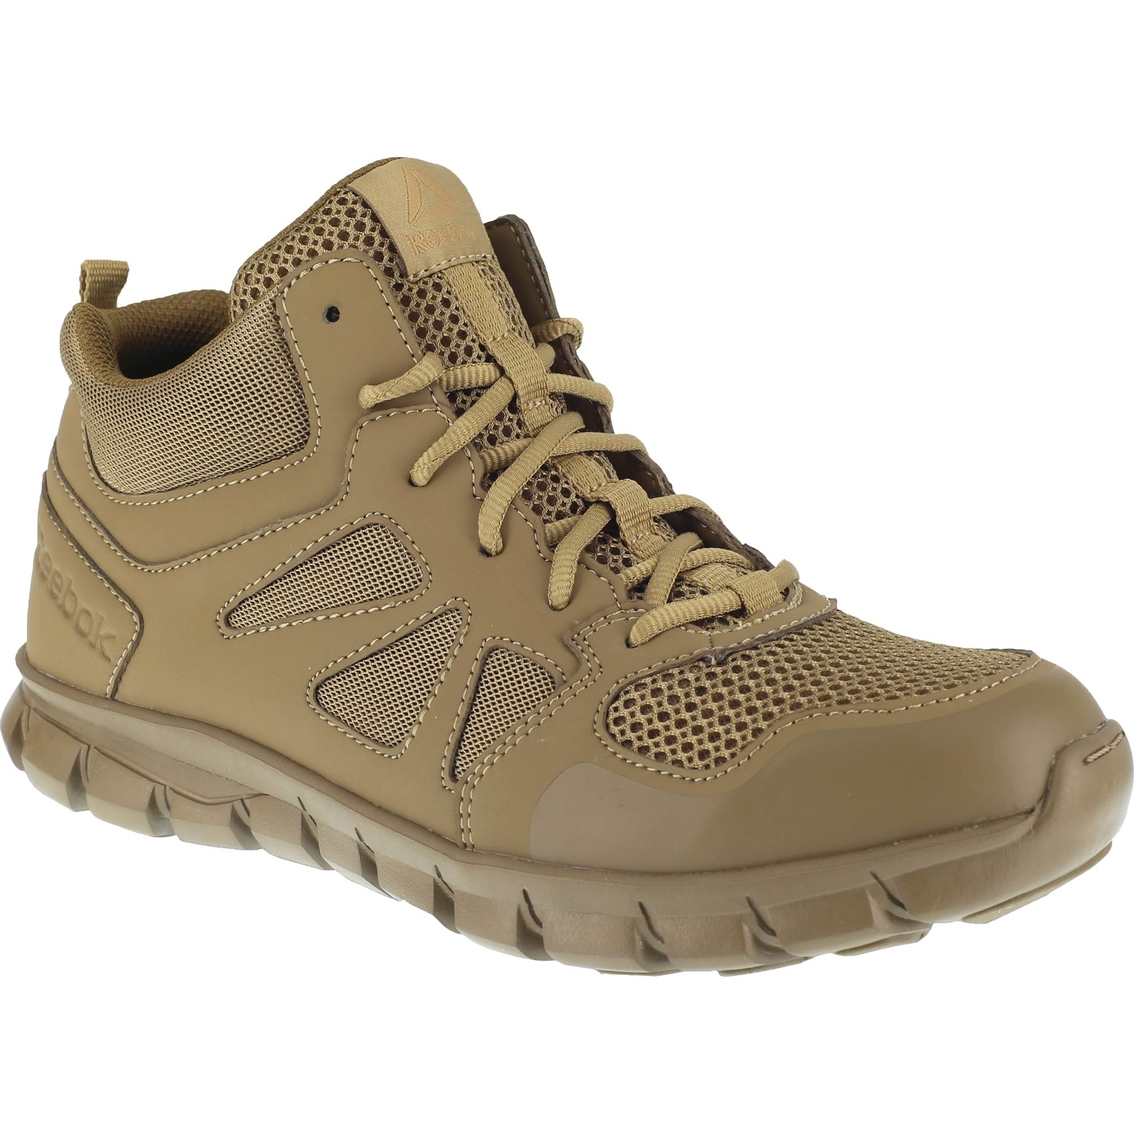 bdc5d1abe1de17 Reebok Sublite Imp Cushion Tactical Work Shoes